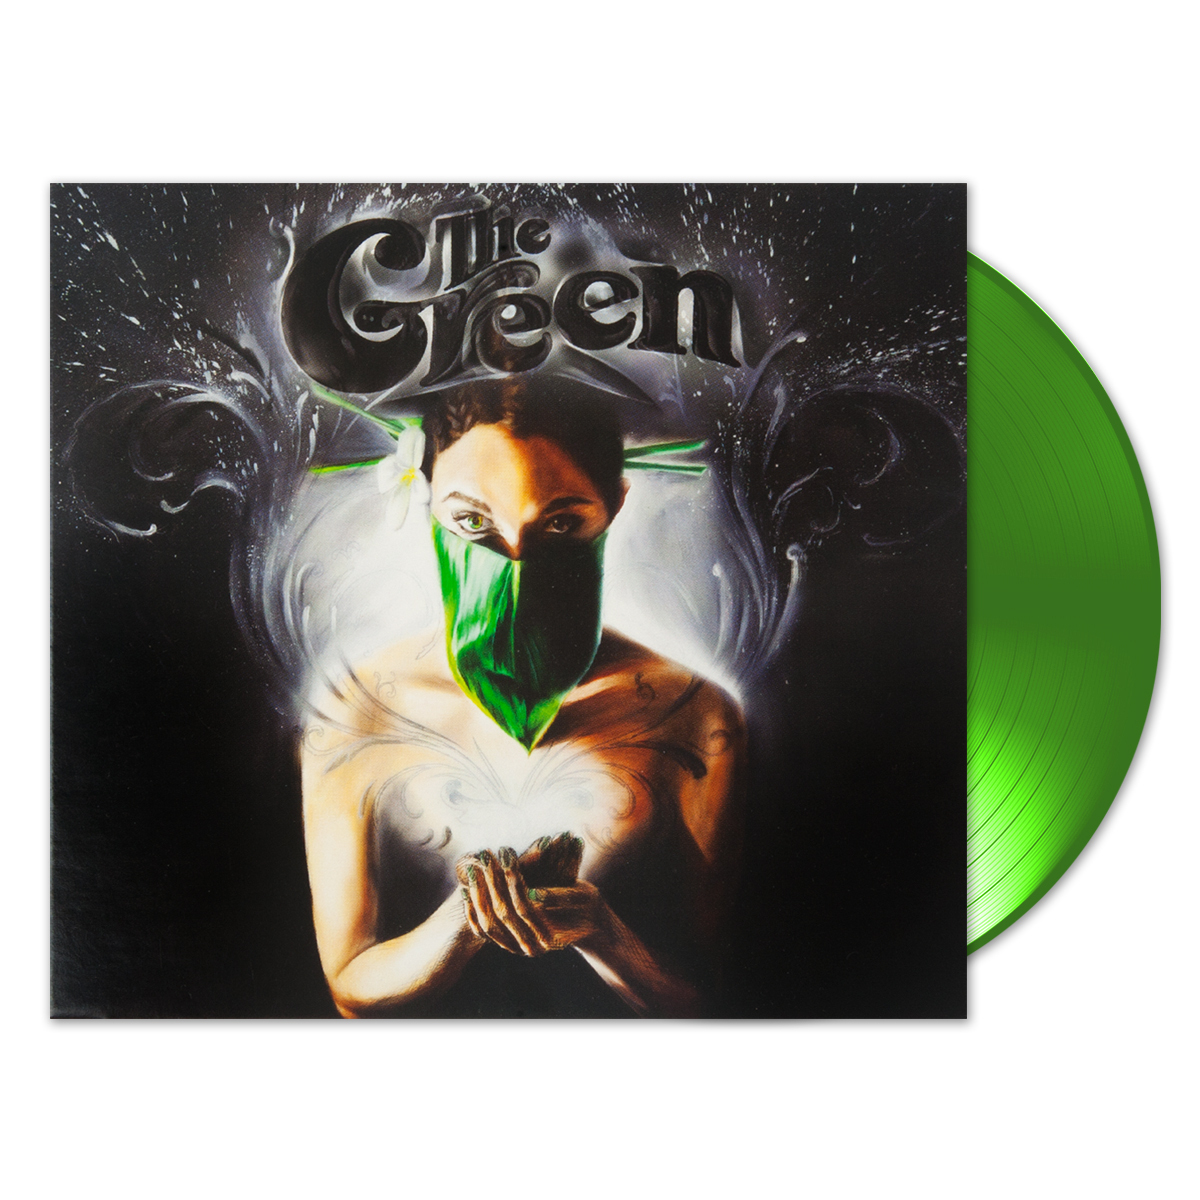 The Green - Ways & Means Limited Edition Green-Colored Vinyl LP